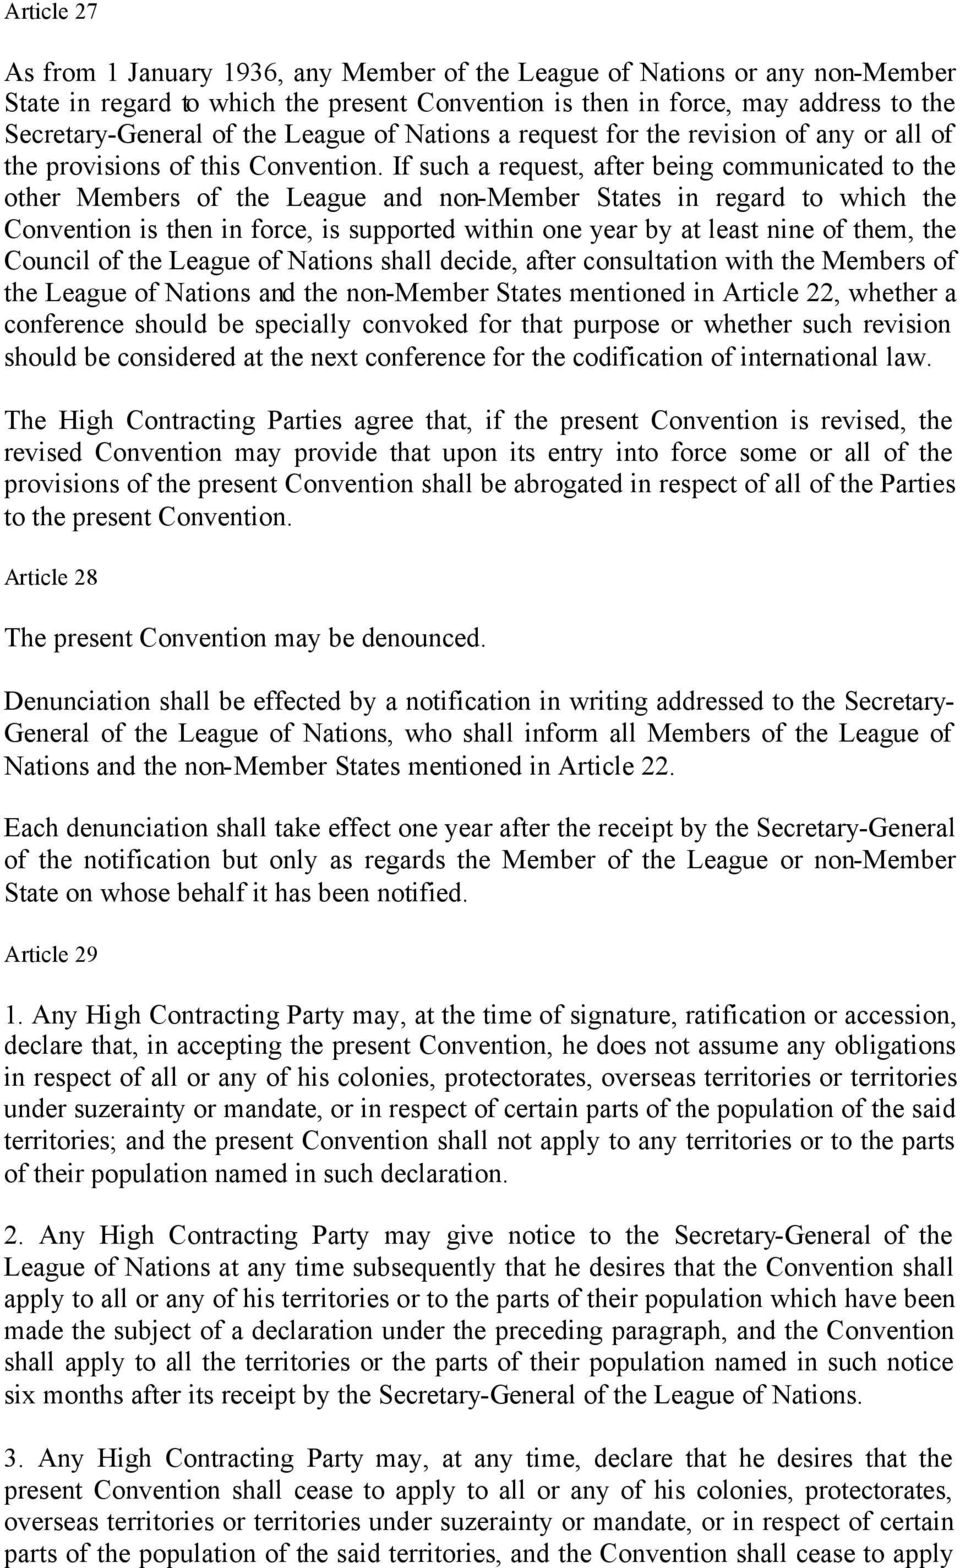 If such a request, after being communicated to the other Members of the League and non-member States in regard to which the Convention is then in force, is supported within one year by at least nine